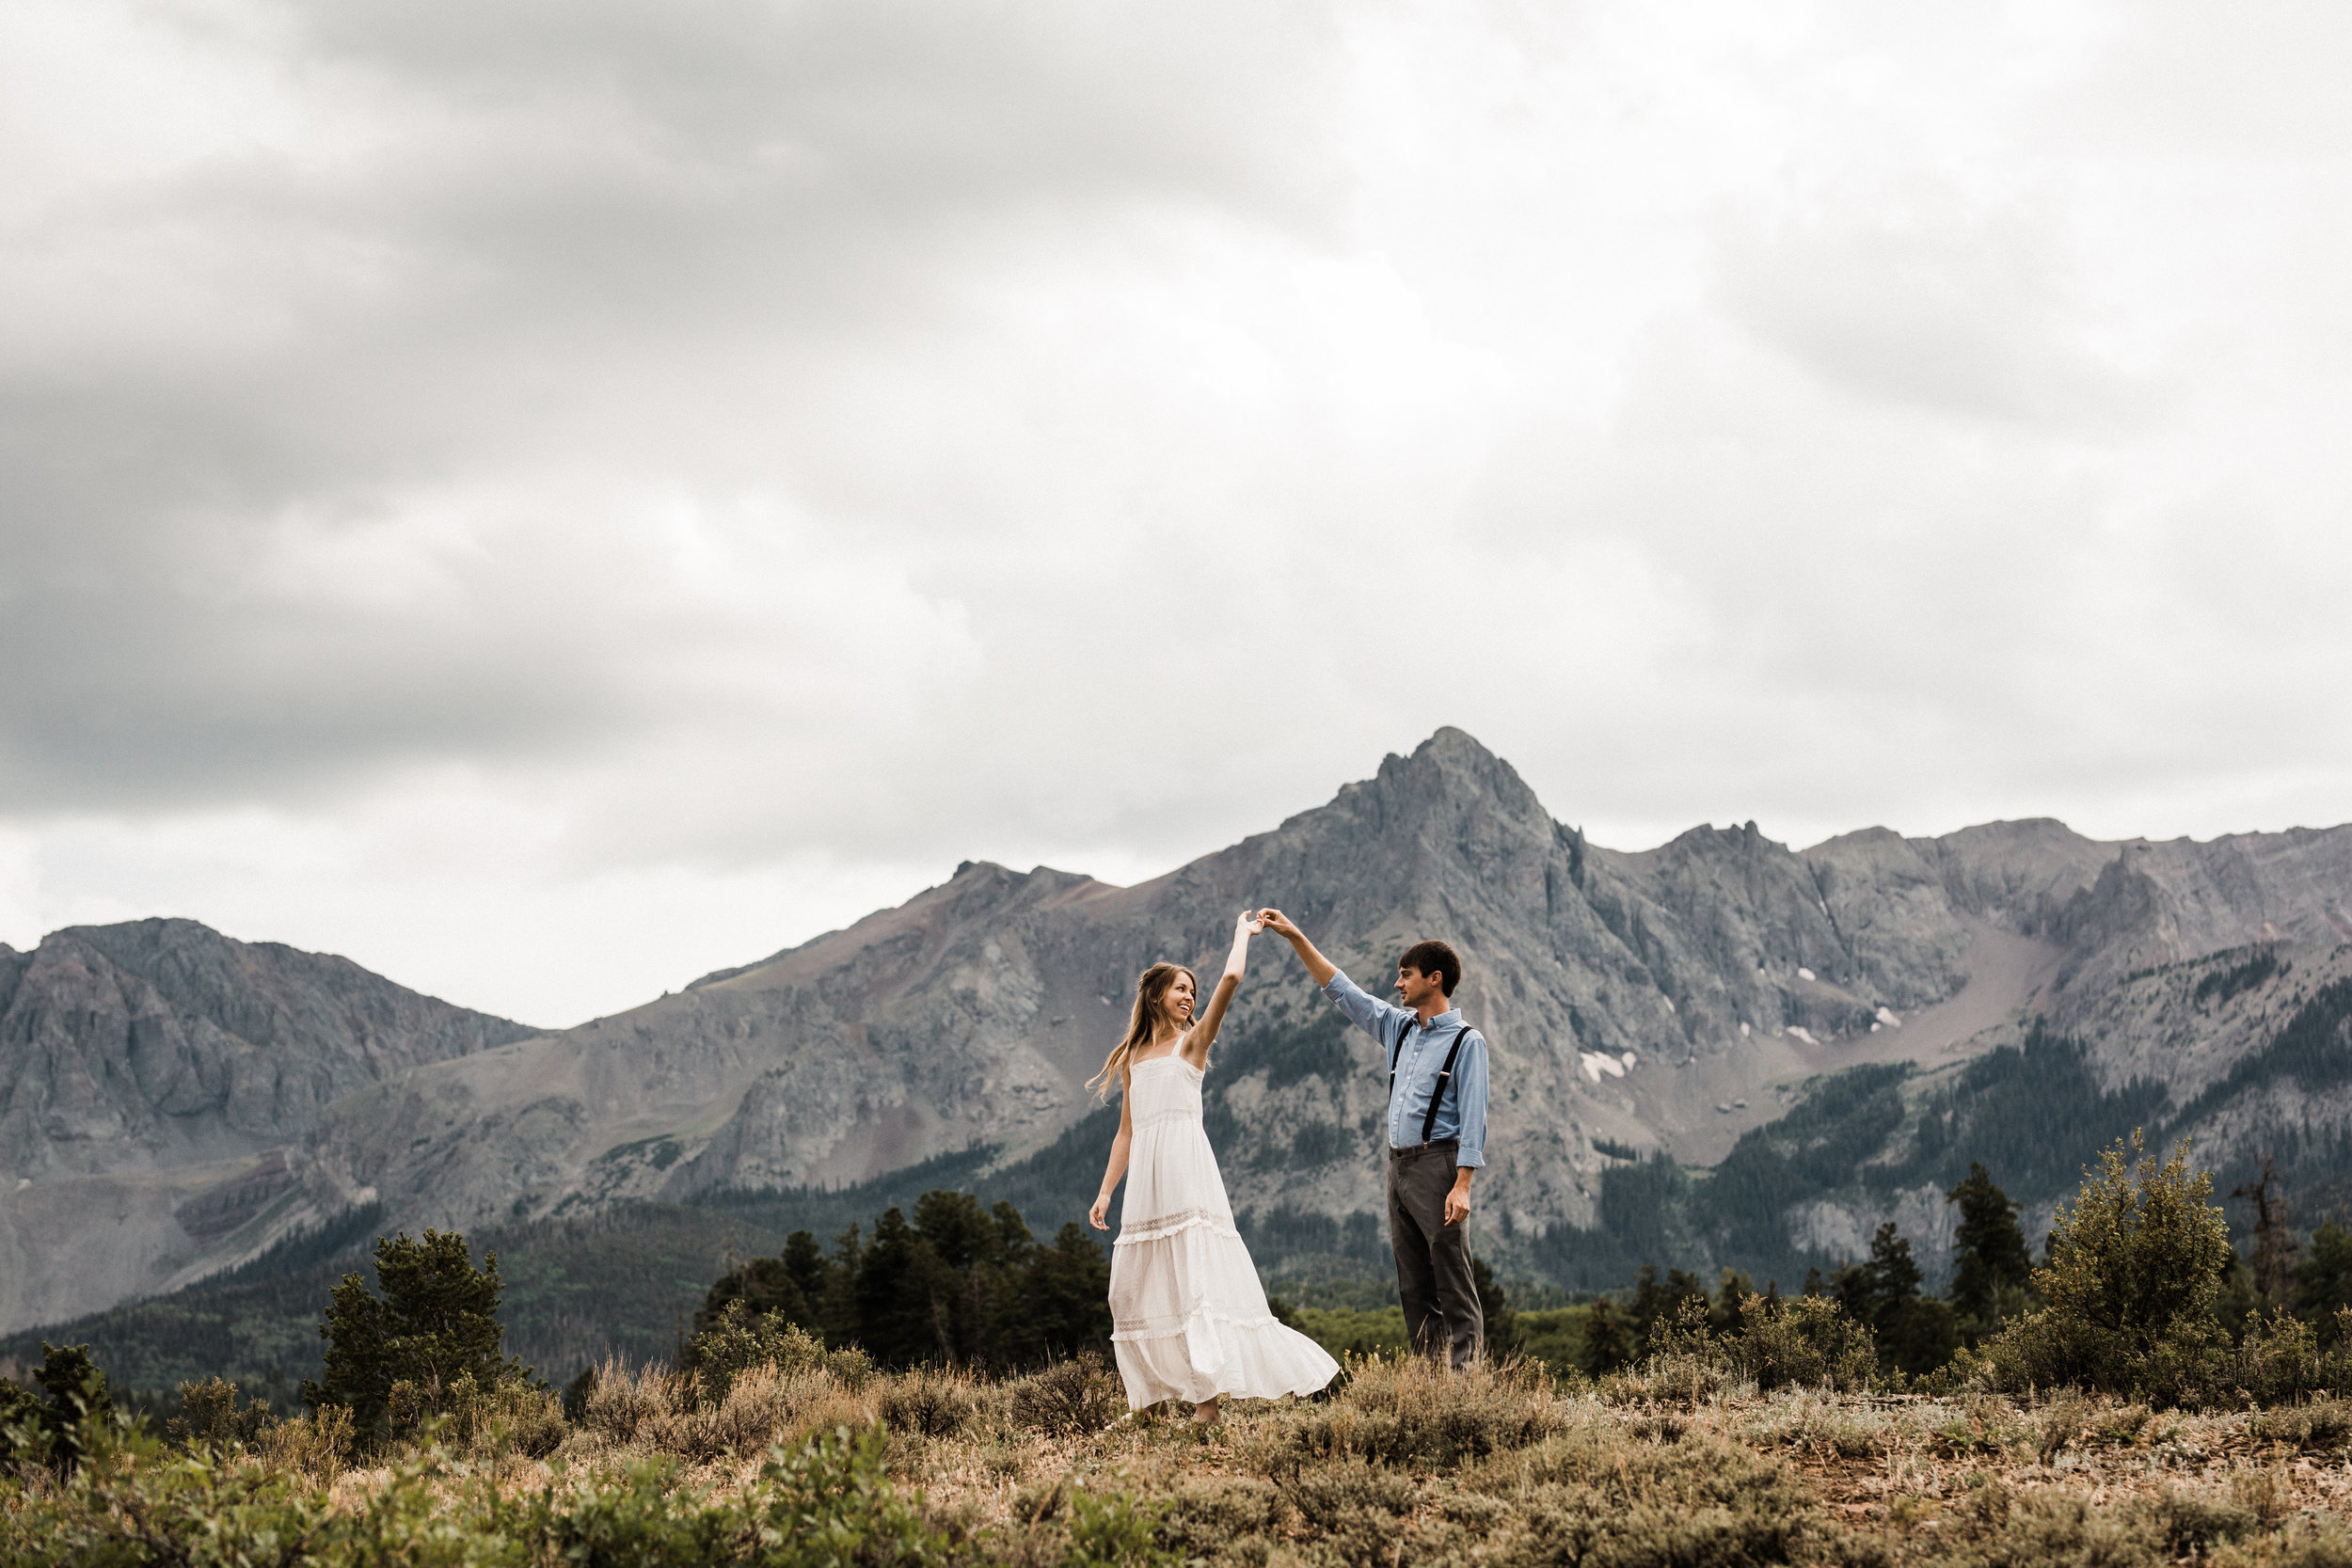 leahandashton-telluride-wedding-photography-KC-0104.jpg